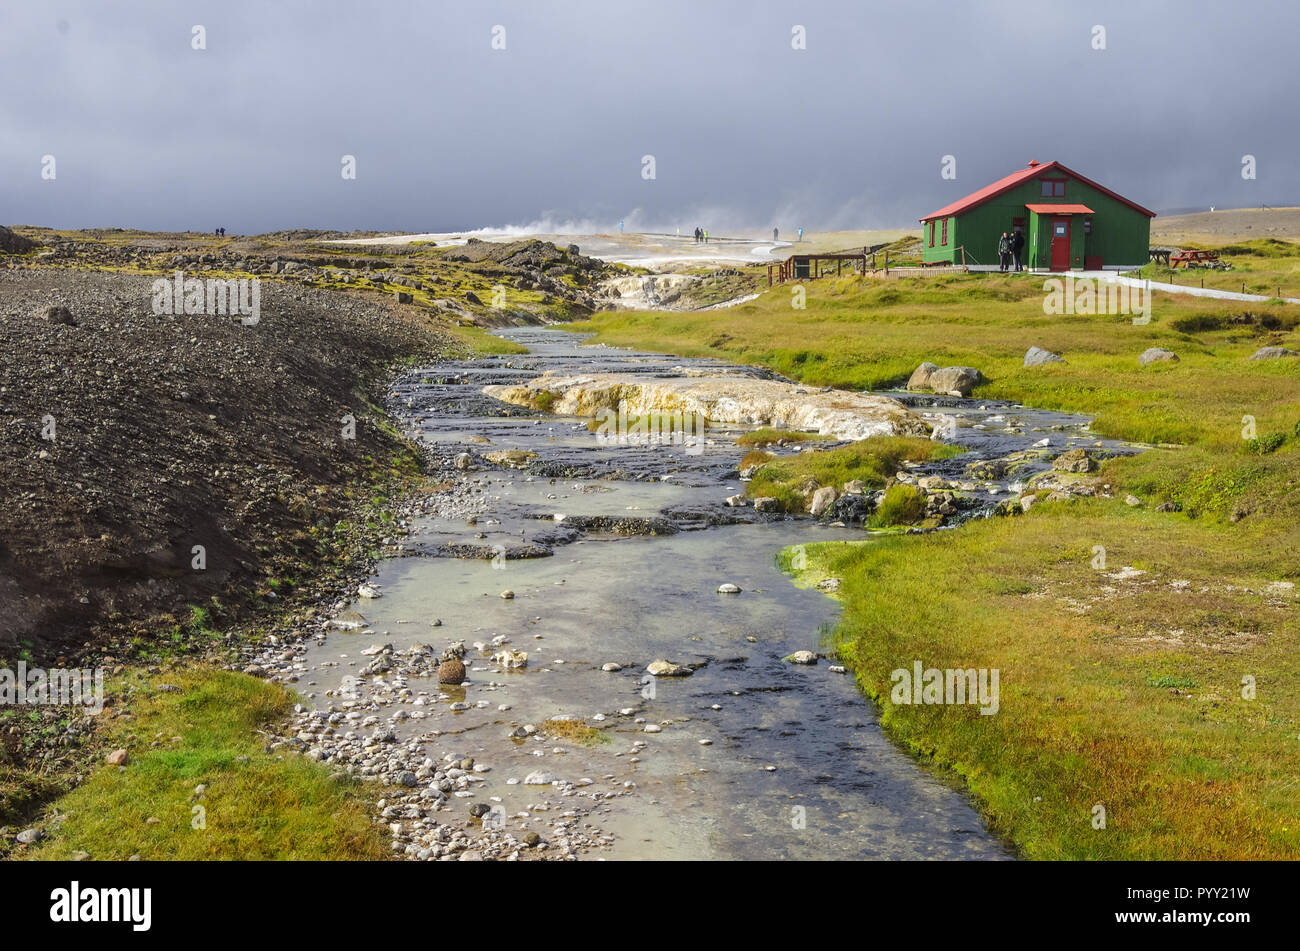 Hot steam coming from the boiling water in the central Iceland in the geothermal area of Hveravellir. - Stock Image